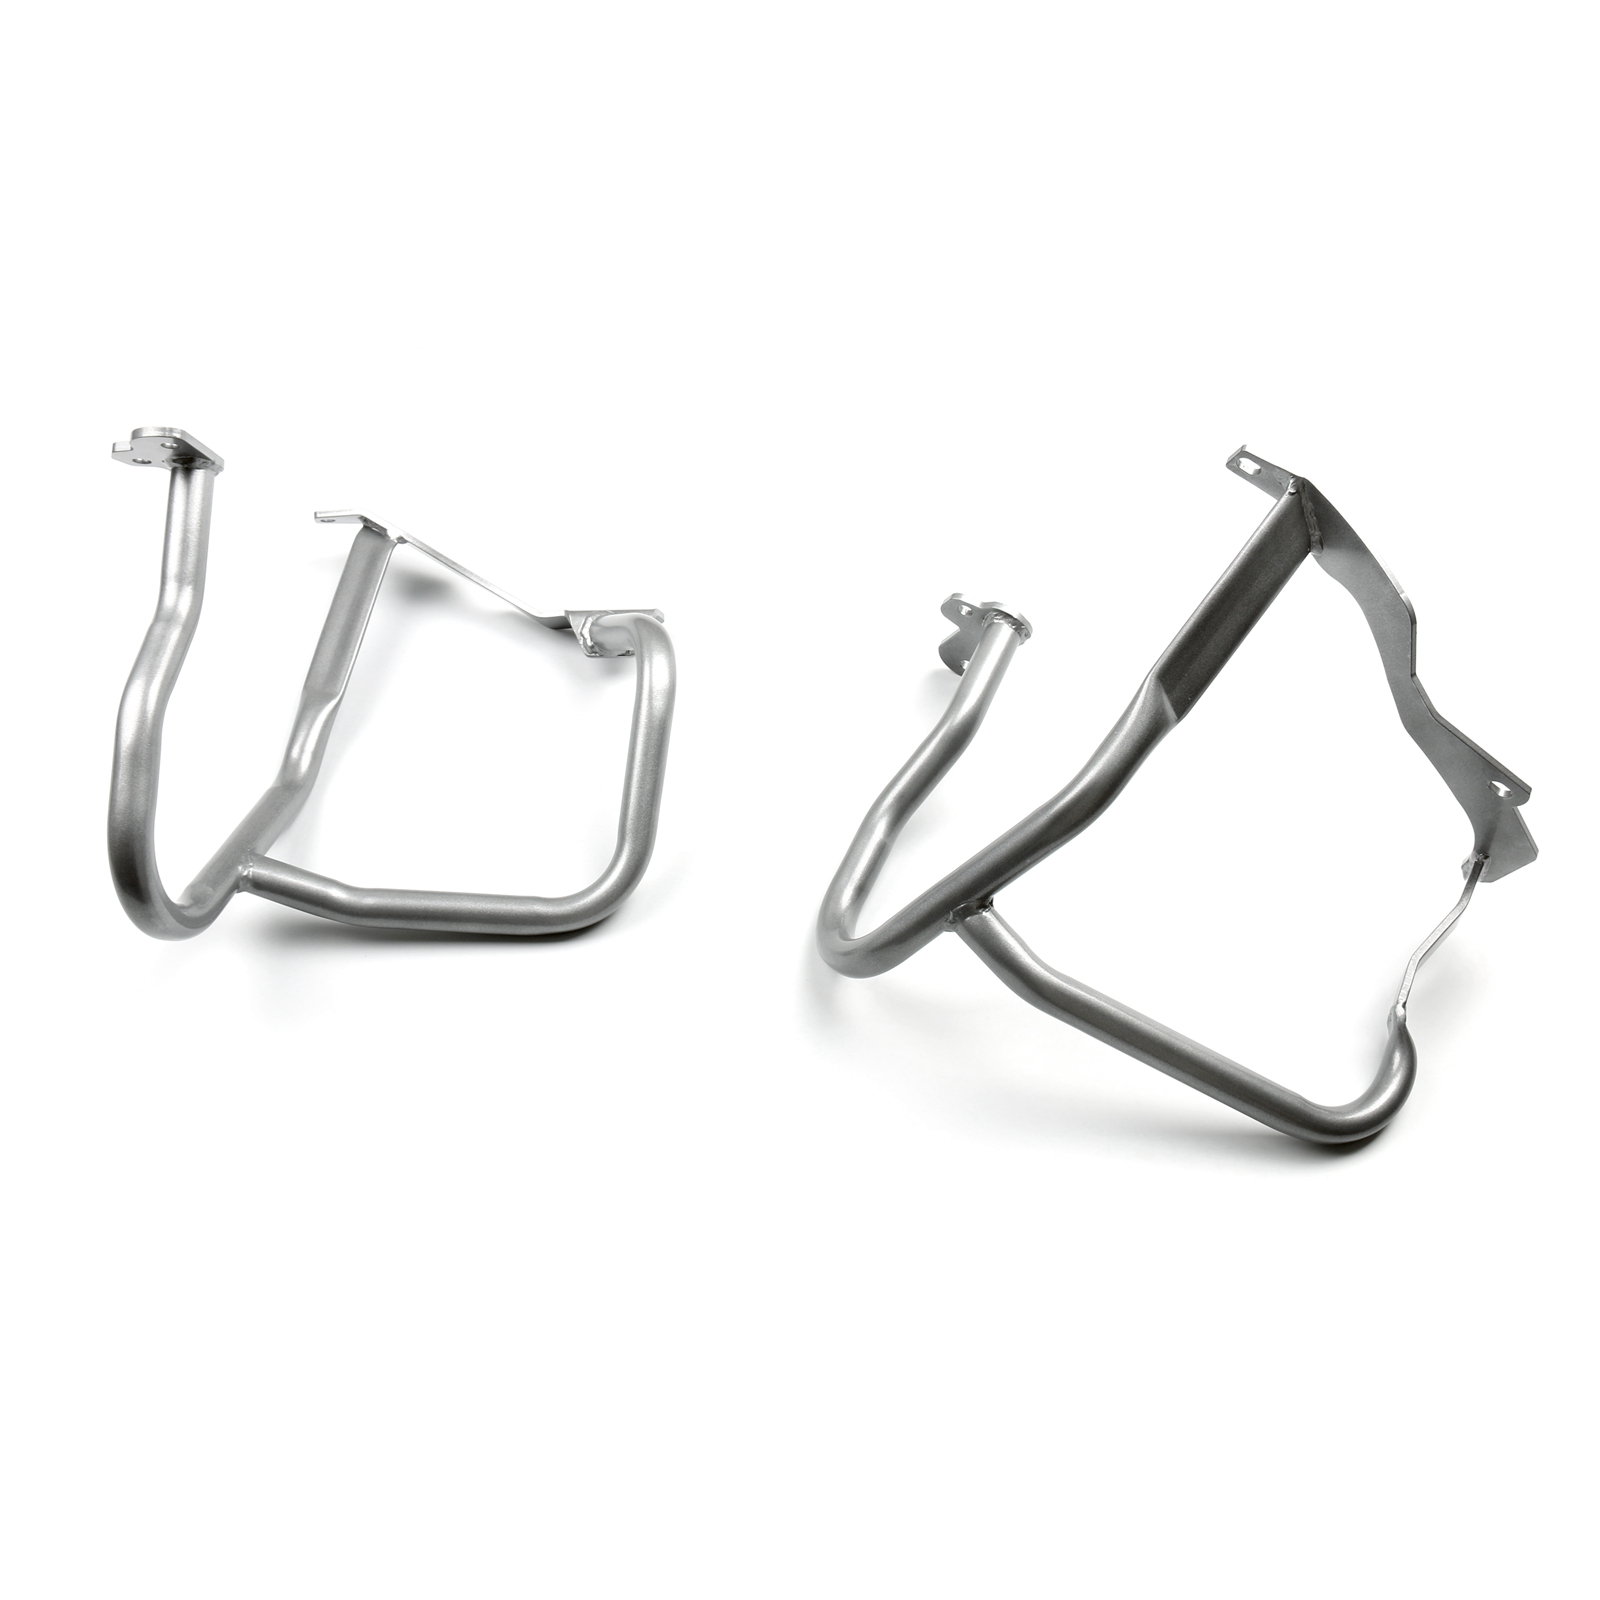 Front Silver Crash Bars Engine Guard Bumper Protector for